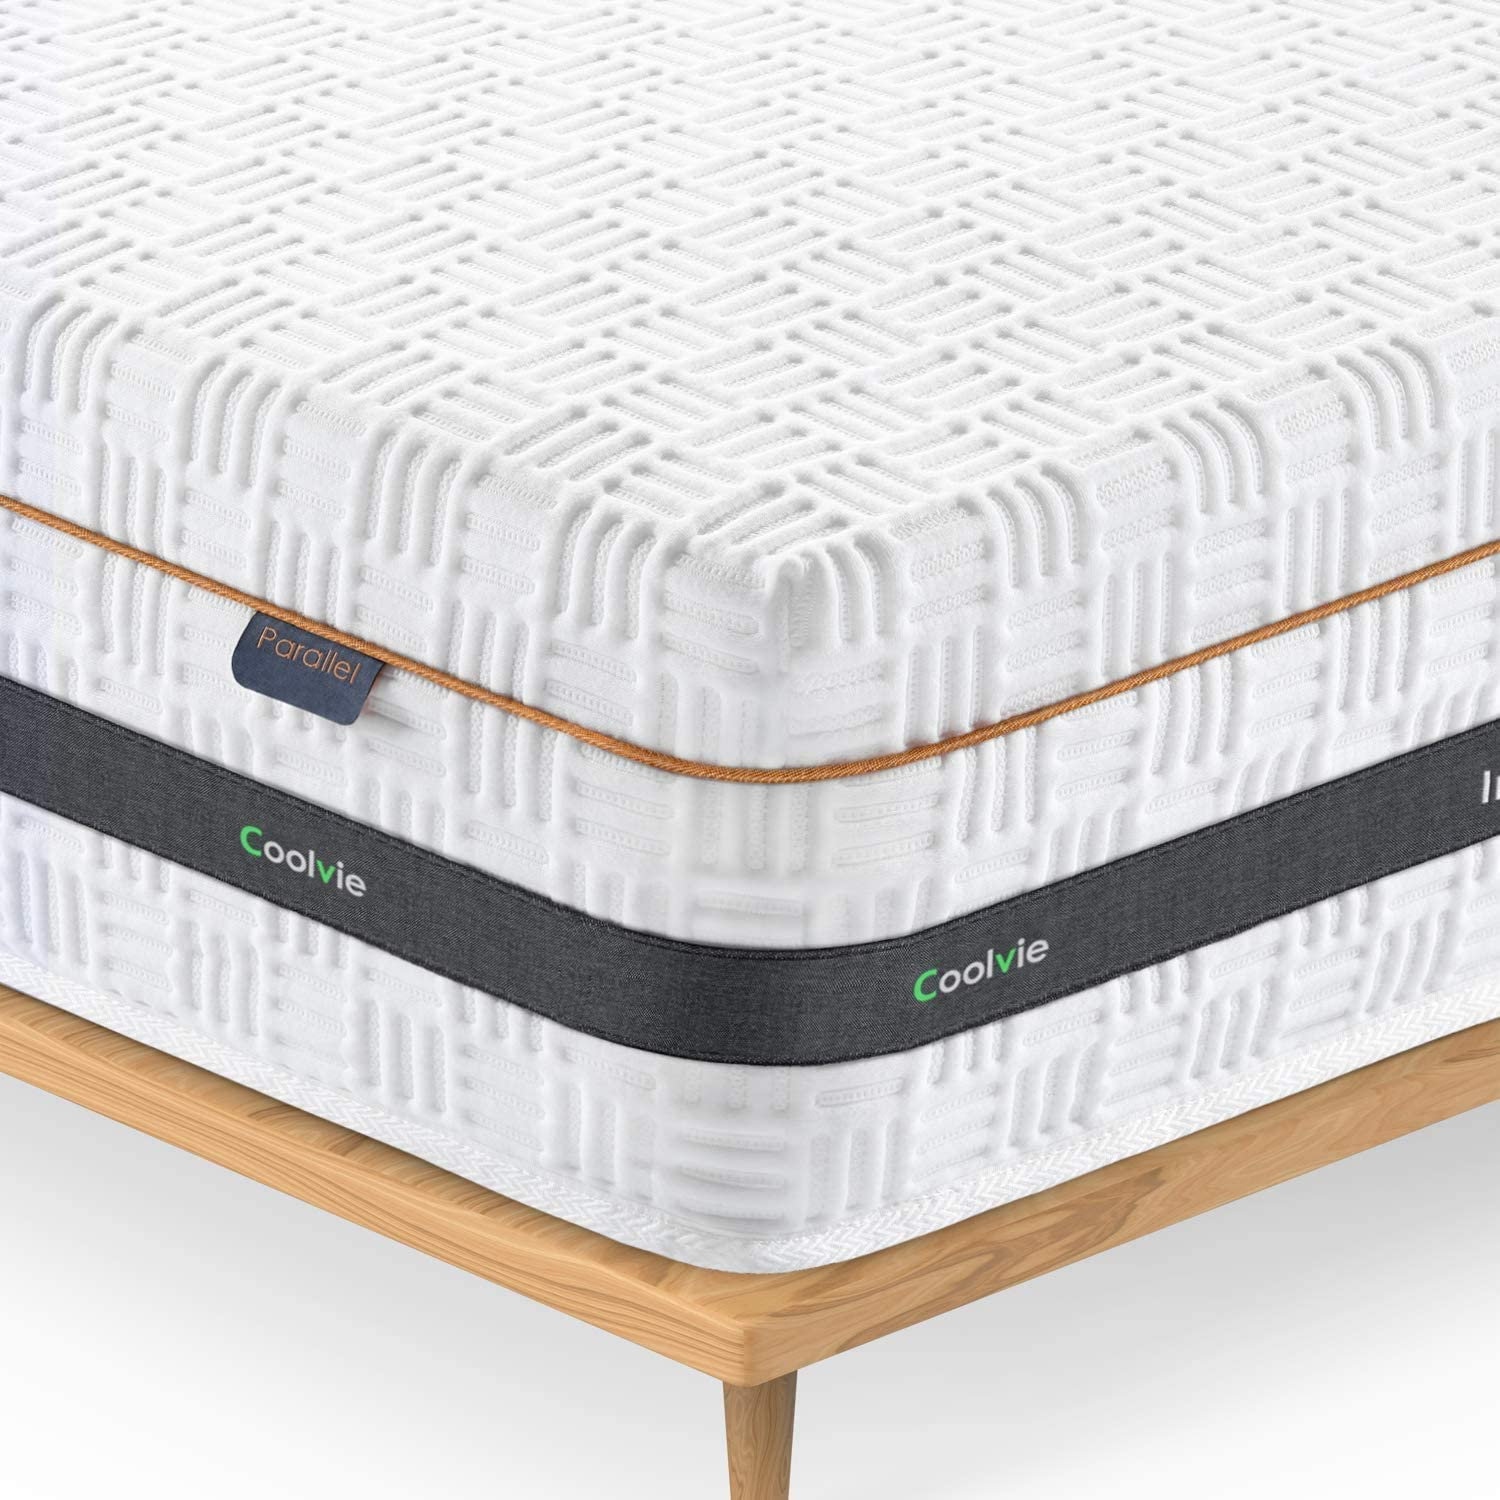 Coolvie Twin Mattress,10 Inch Hybrid Single Mattress in a Box, Gel Memory Foam for Sleep Cool, Motion Isolating Individually Wrapped Coils,Supportive & Pressure Relief,Twin Size